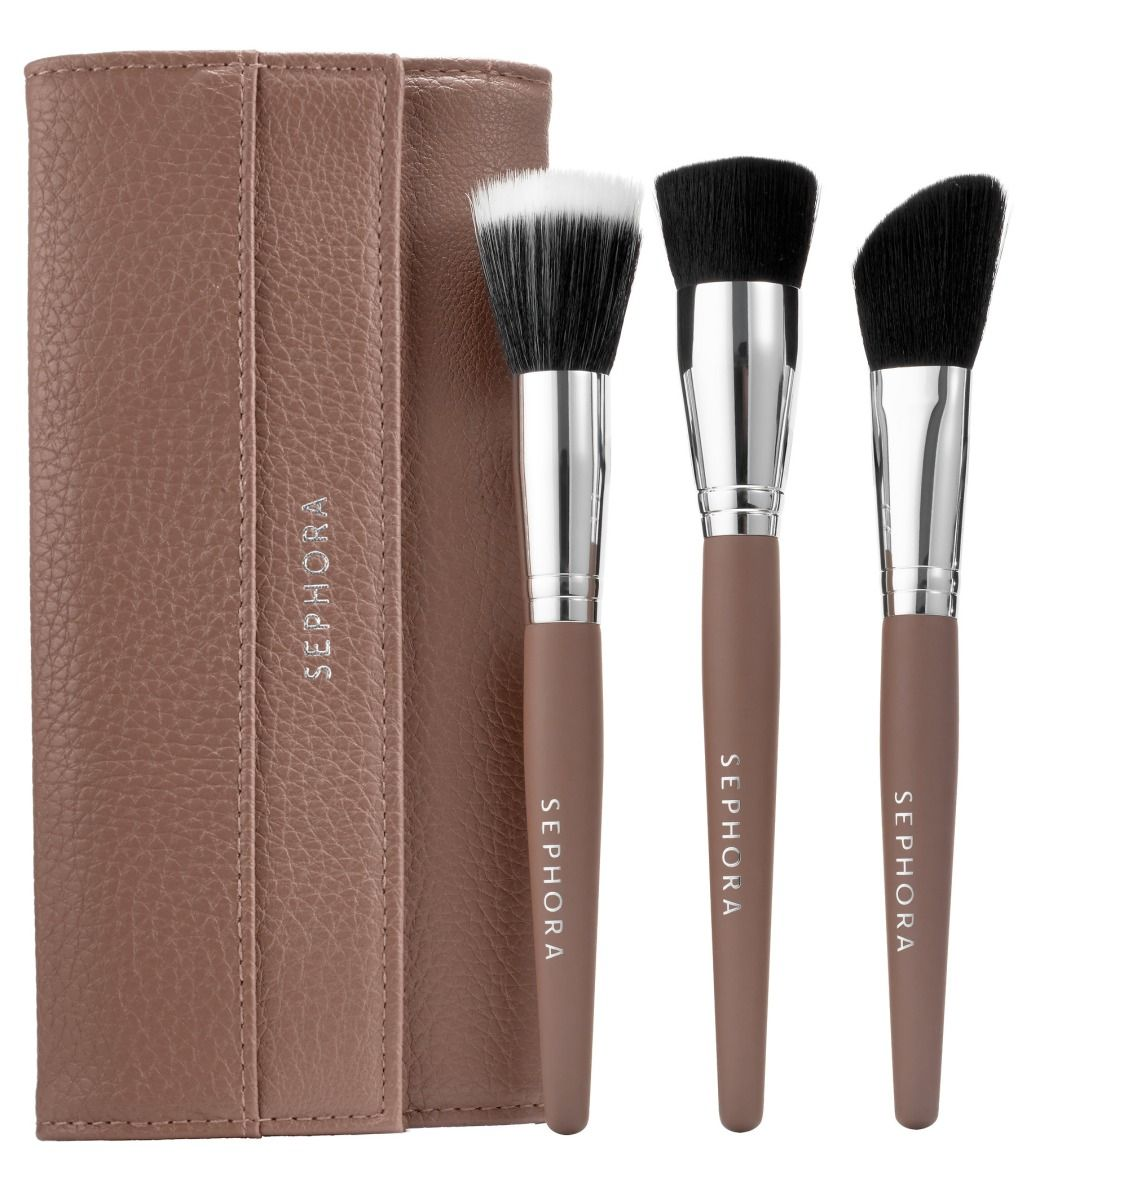 I love the stippling and flat top brushes in this set. I